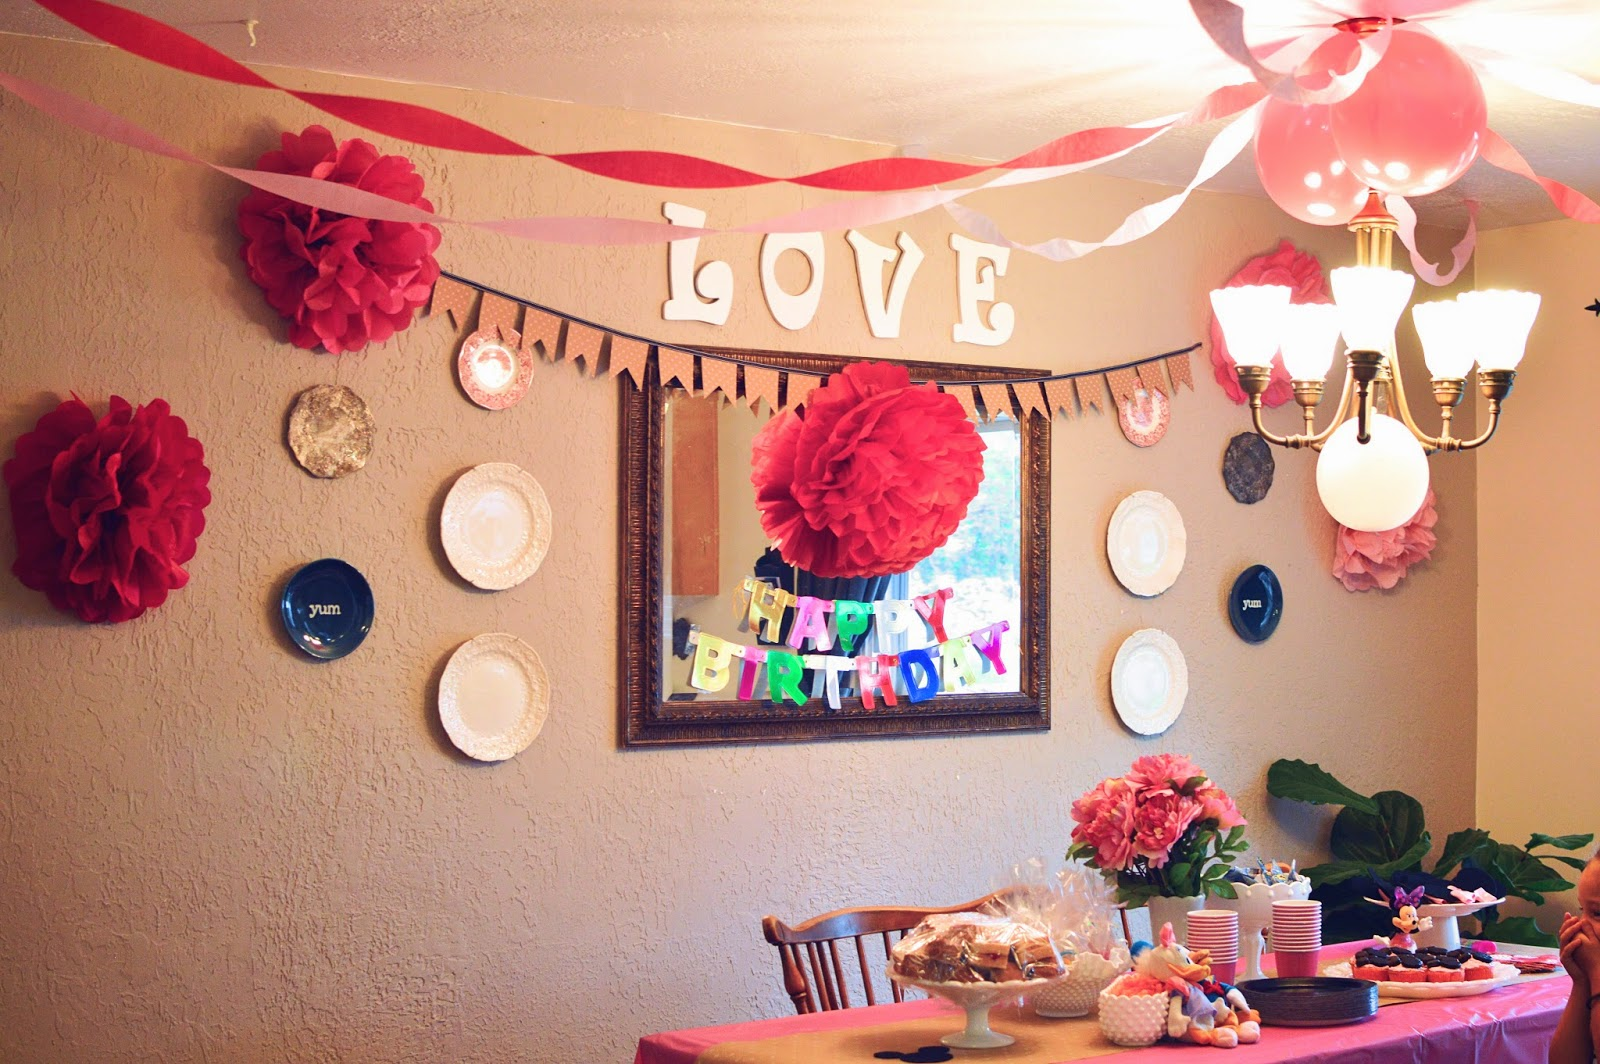 Happiness made minnie mouse birthday party on a budget for decorations i kept it affordable with tissue paper flowers streamers and a chalkboard paper minnie mouse door sign here is everything all pulled amipublicfo Choice Image